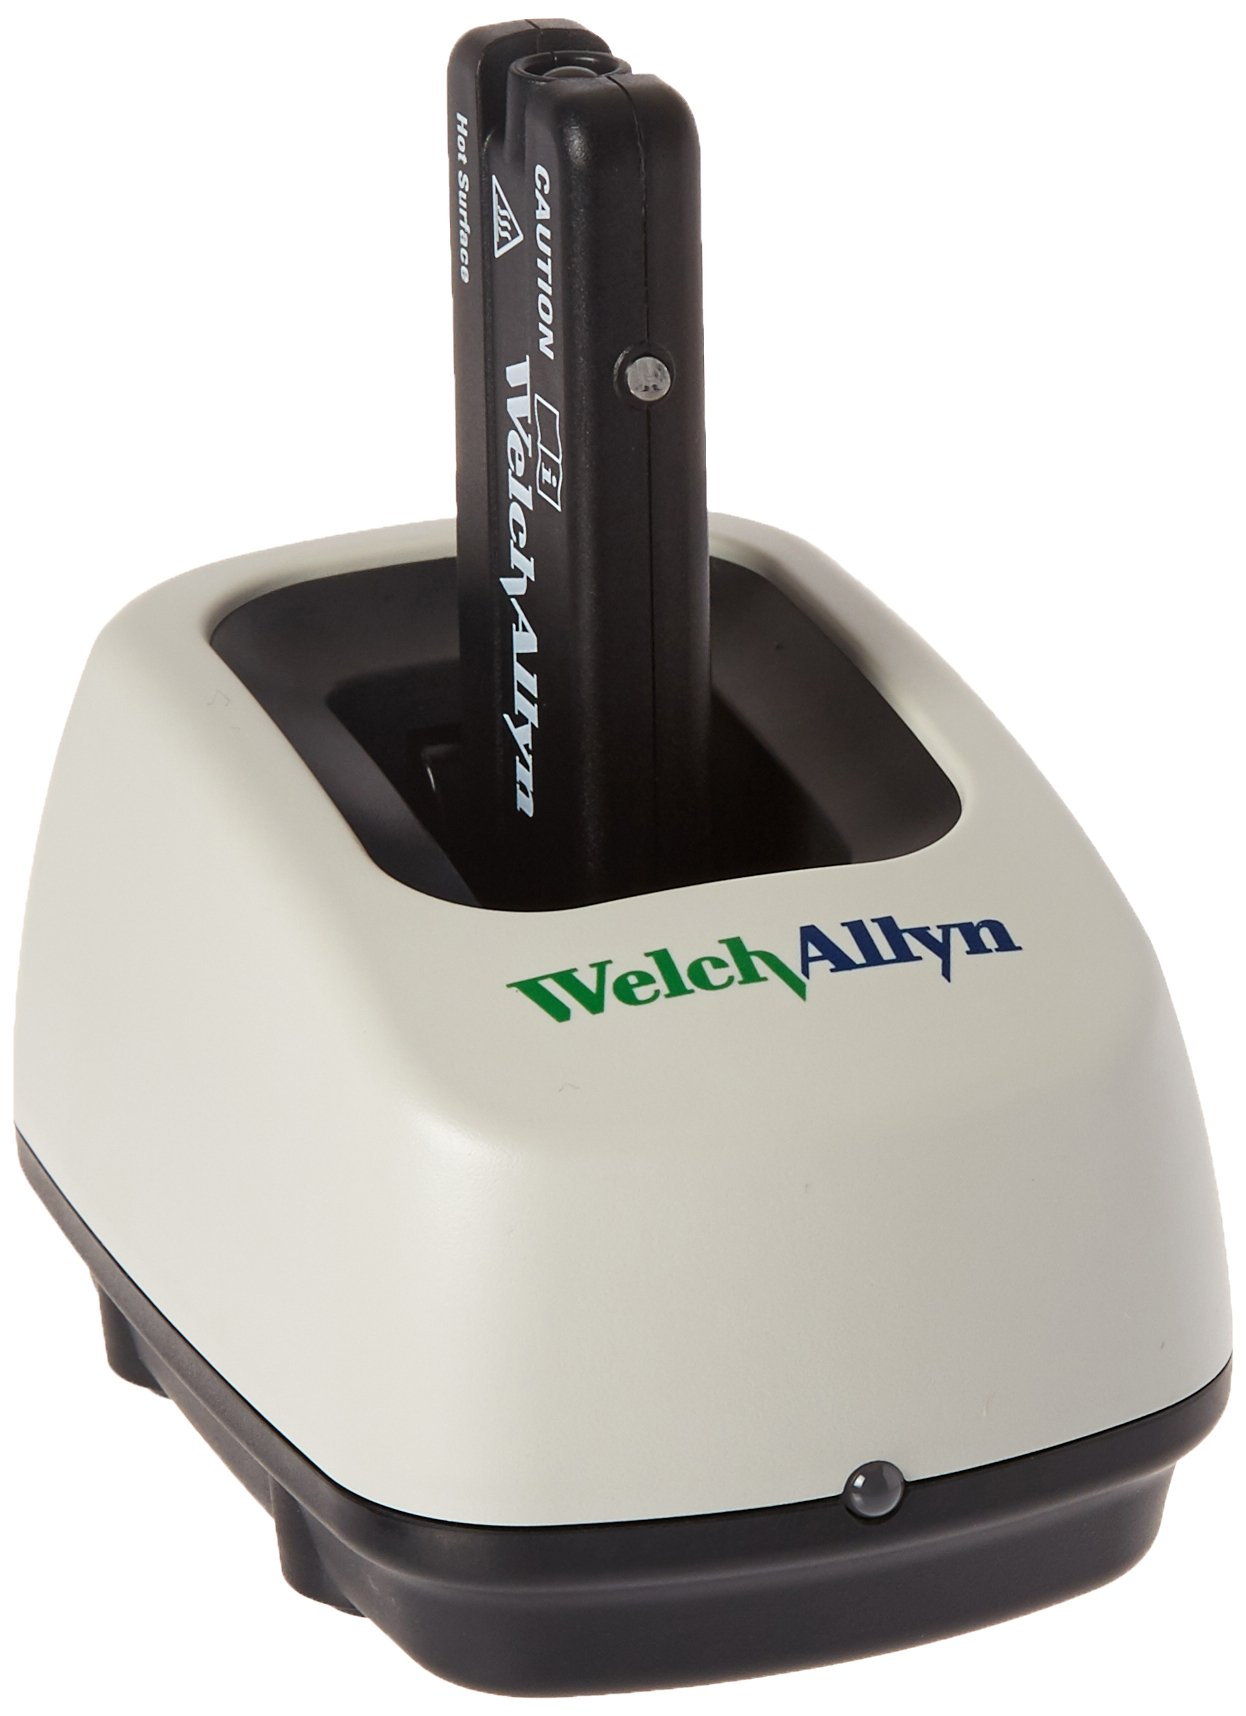 Welch Allyn 79910 Complete KleenSpec Cordless Illuminator with Charging Station